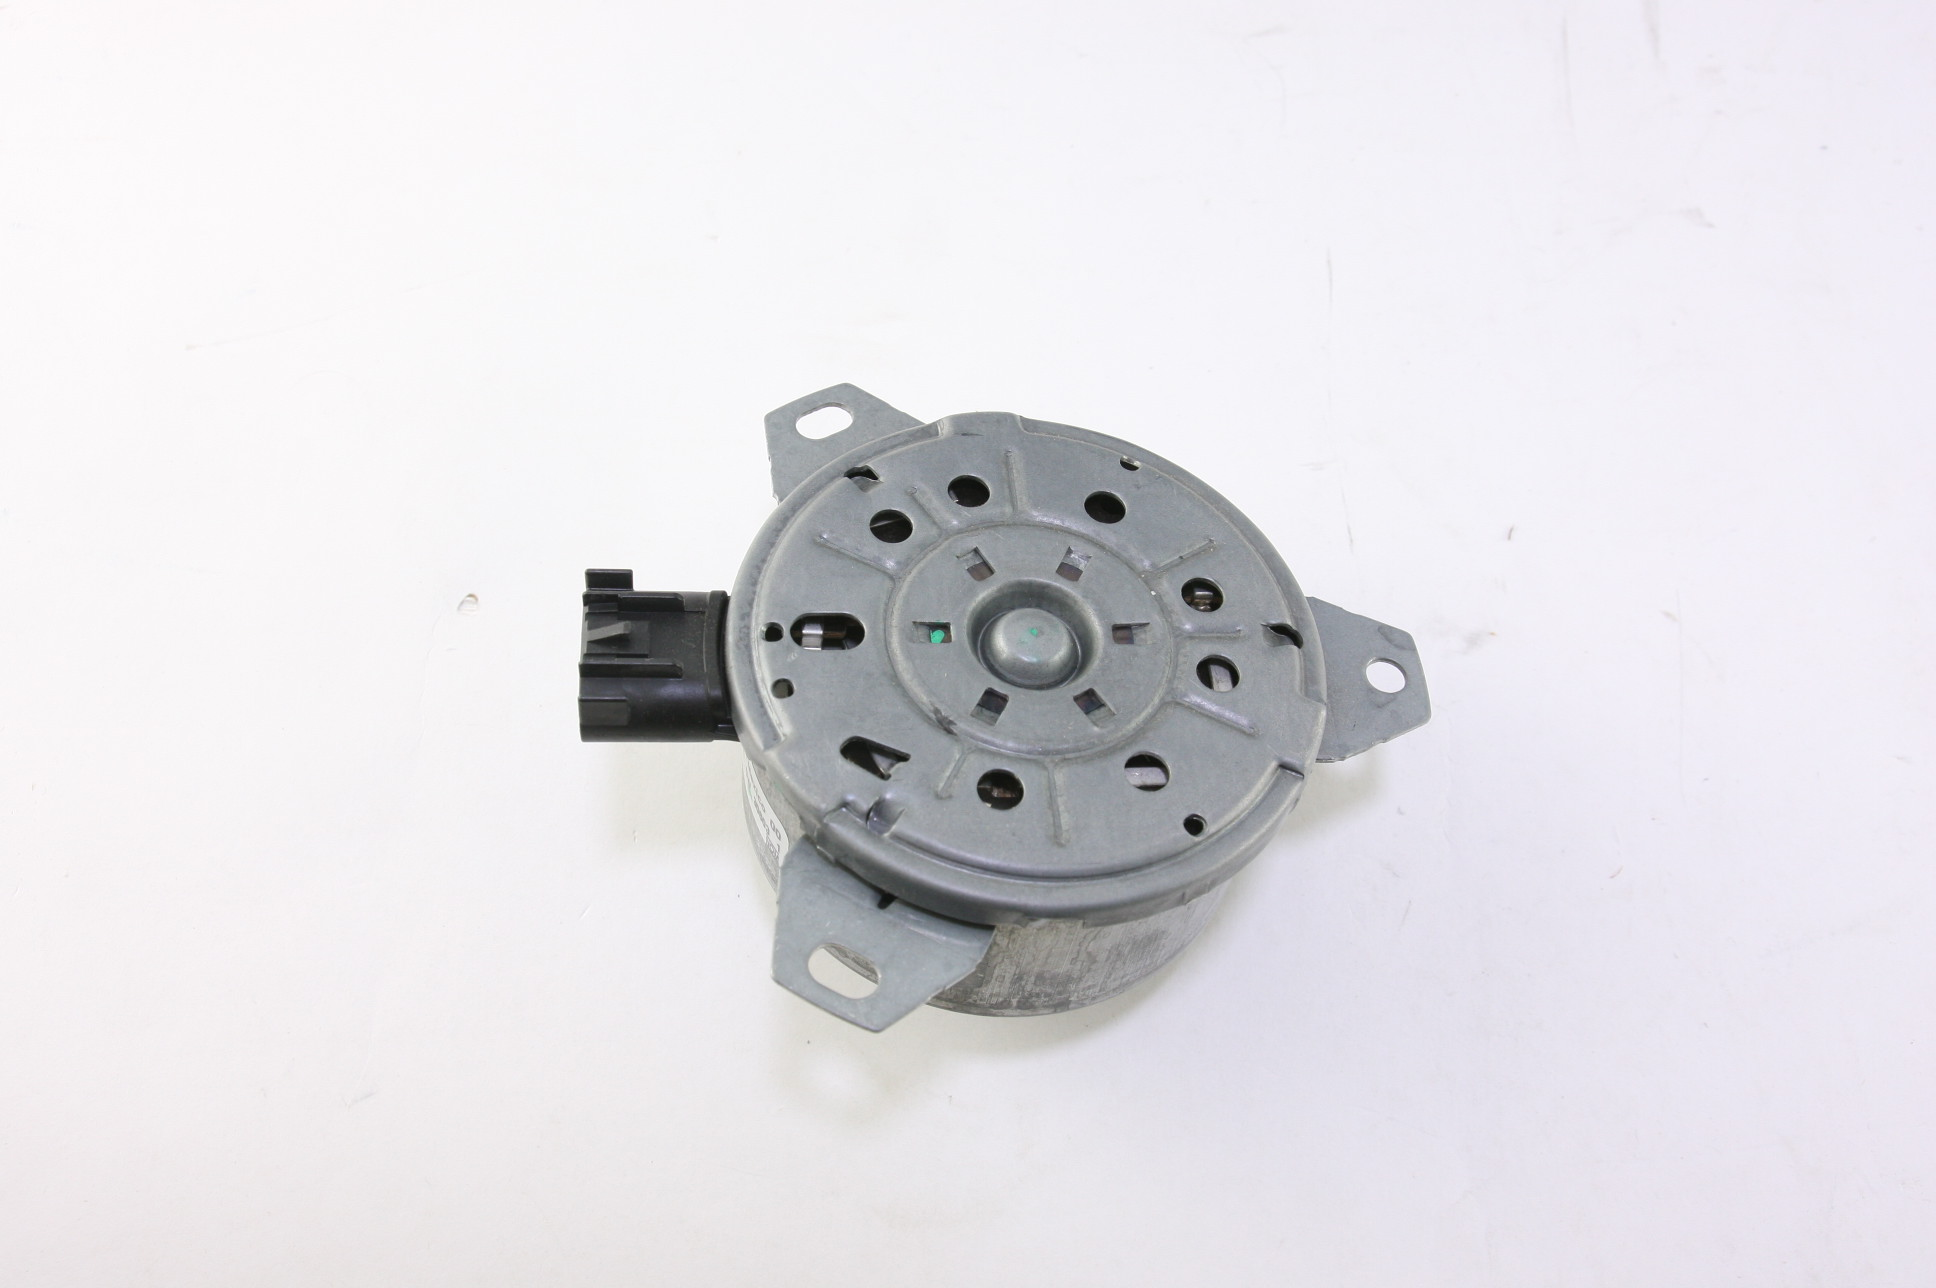 *~ New OEM ACDelco 15-81640 Engine Cooling Fan Left 13269461 Fast Free Shipping - image 10